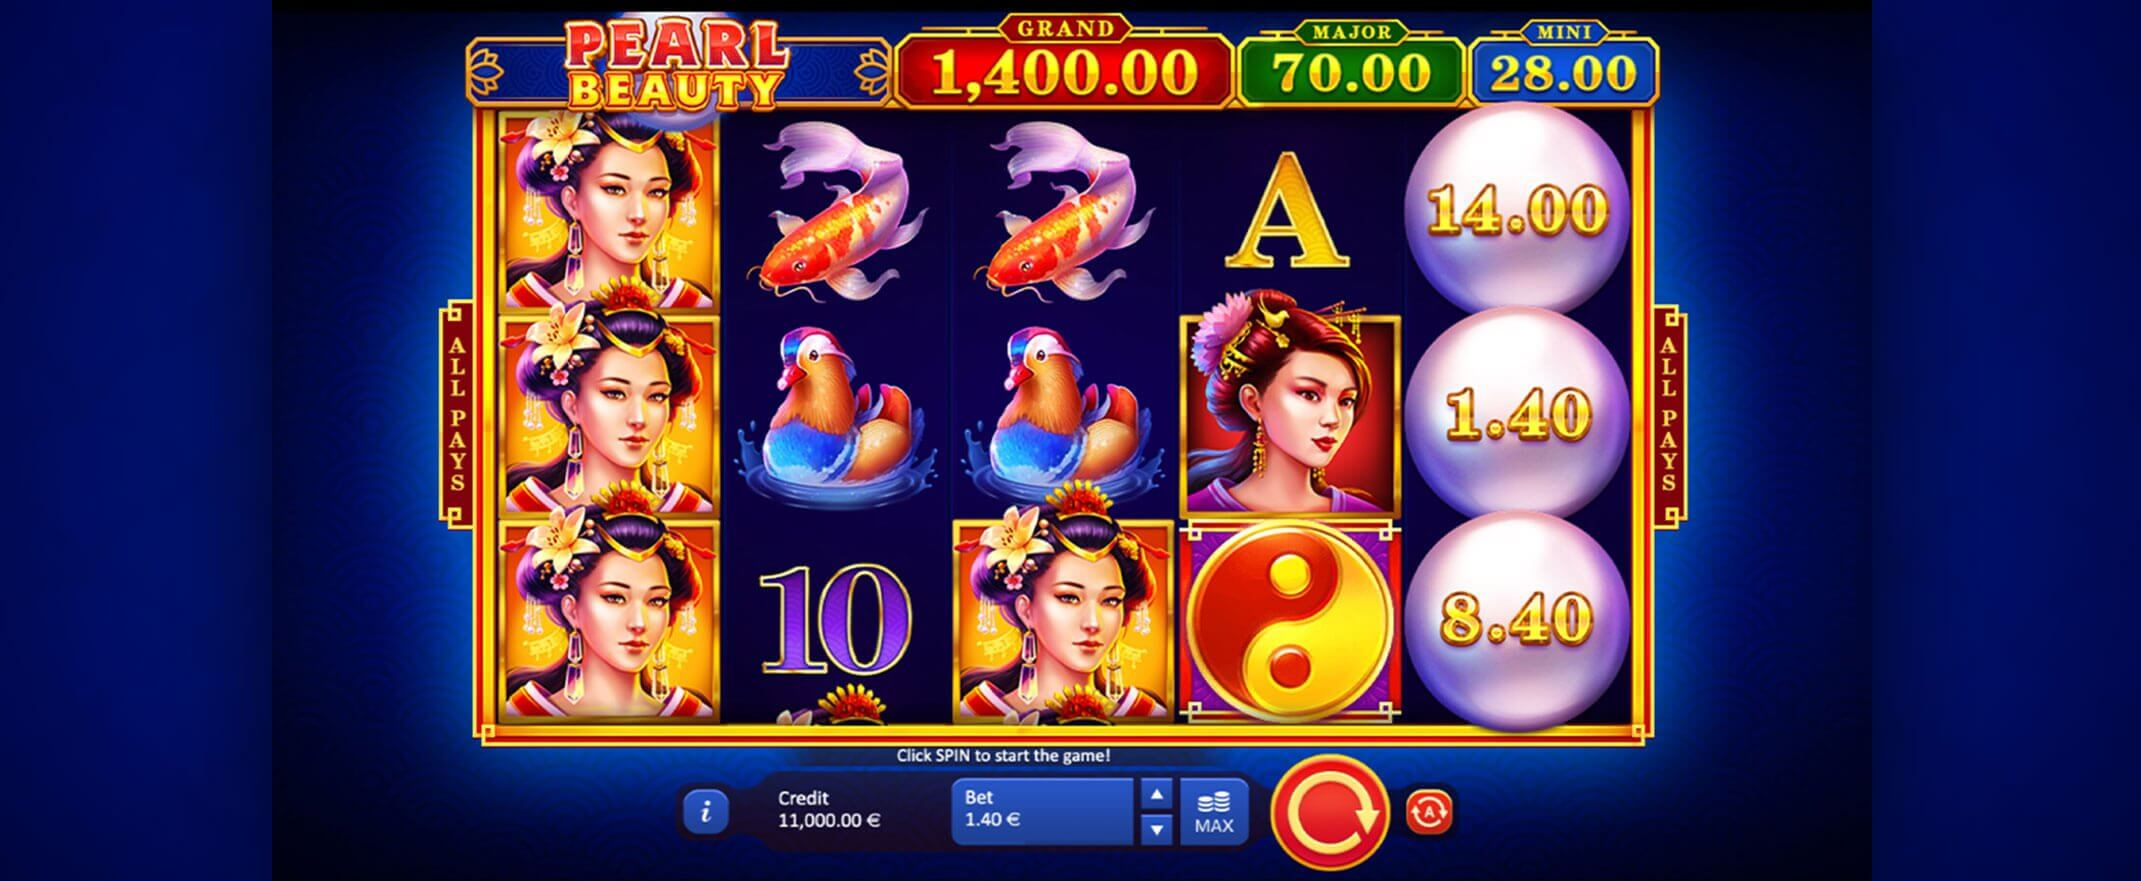 Pearl Beauty Hold and Win Slot Bonus